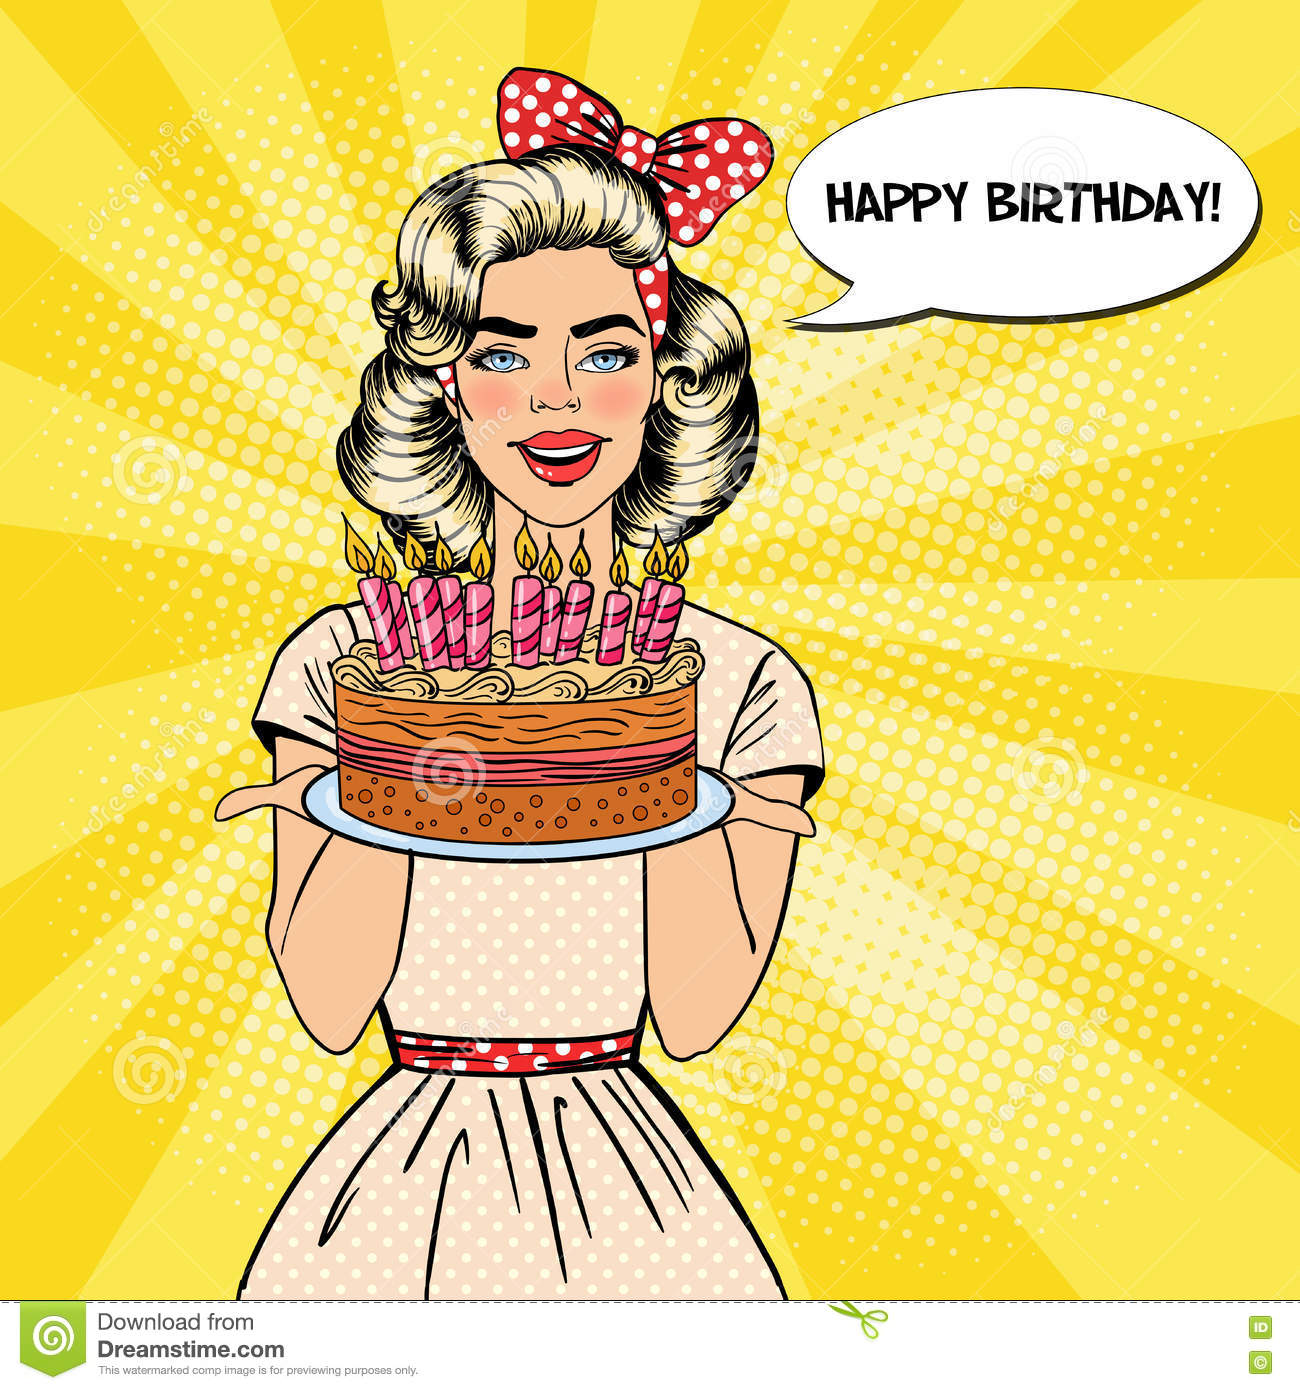 Pop Art Beautiful Woman Holding A Plate With Happy Birthday Cake Candles